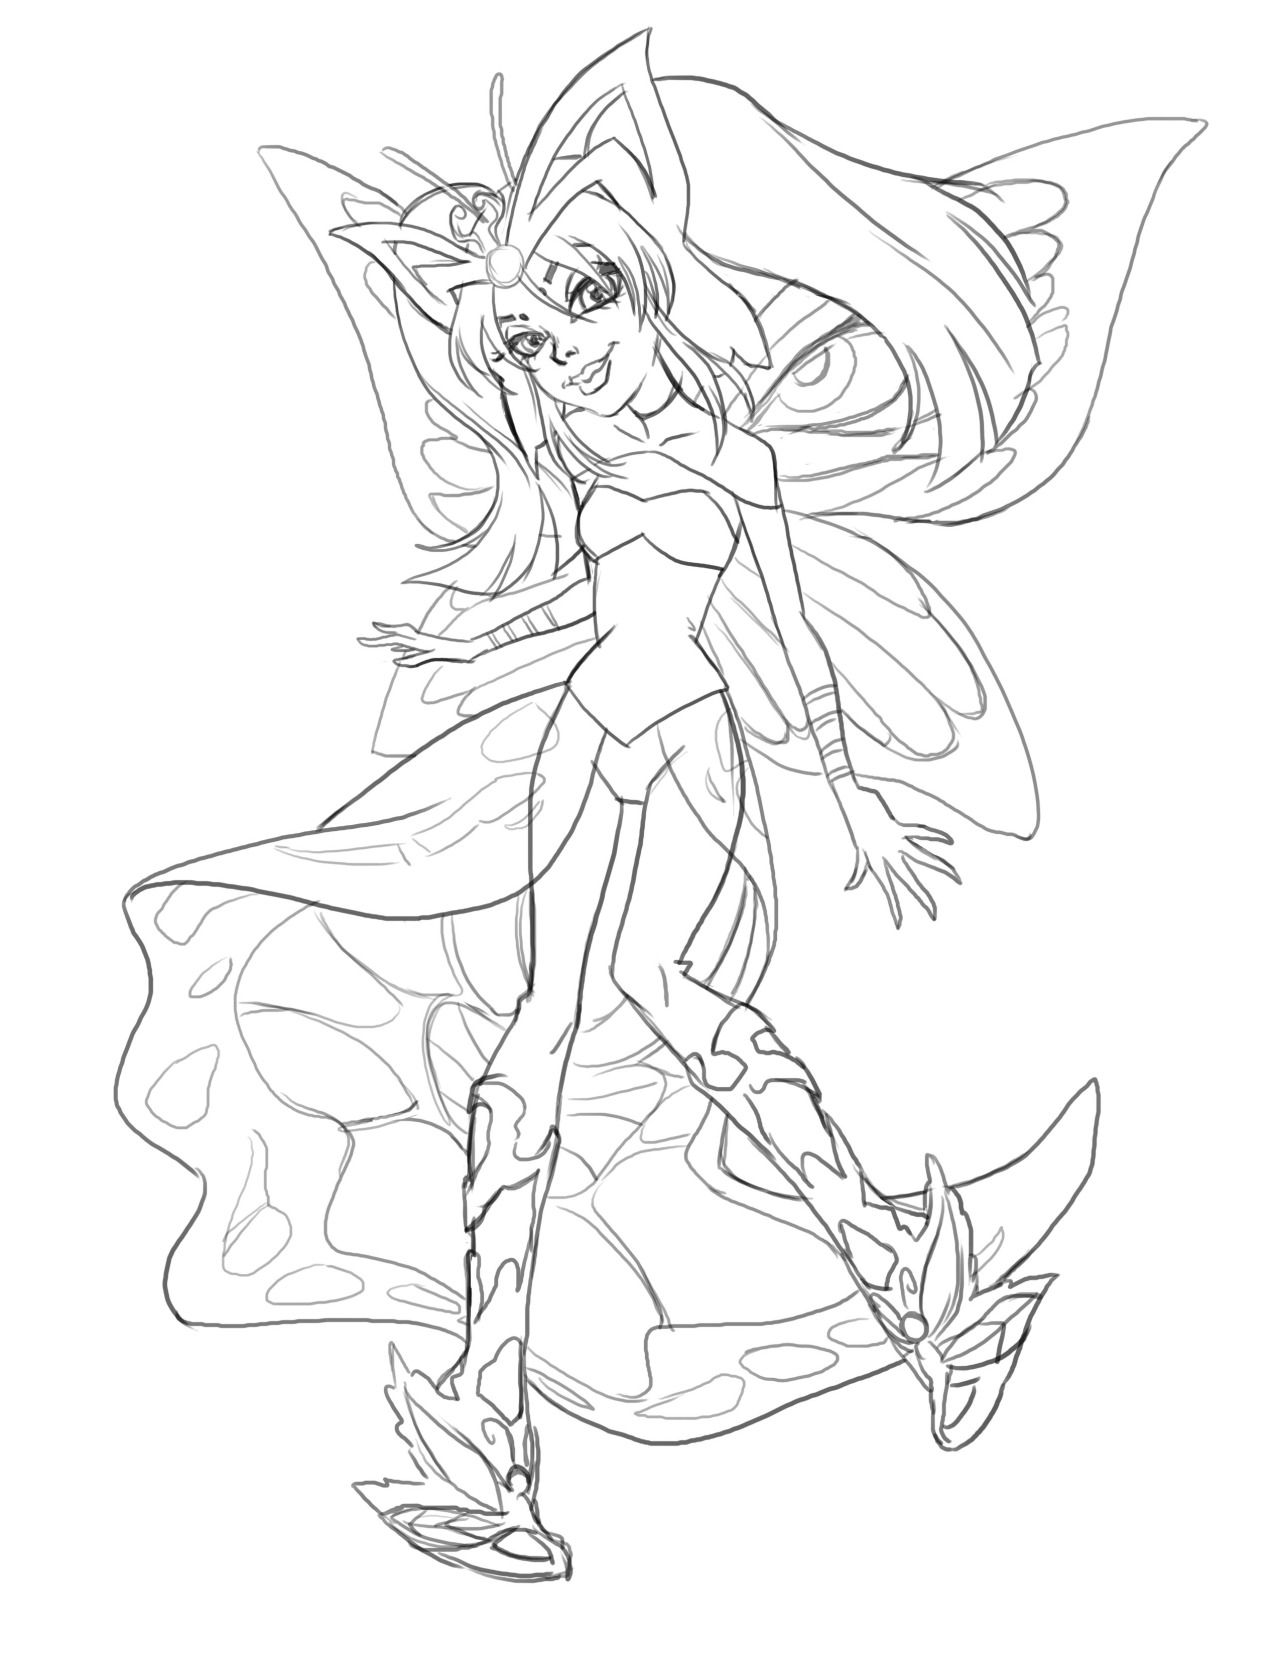 Coloring pages | Monster High | Pinterest | Monster high, Monsters ...